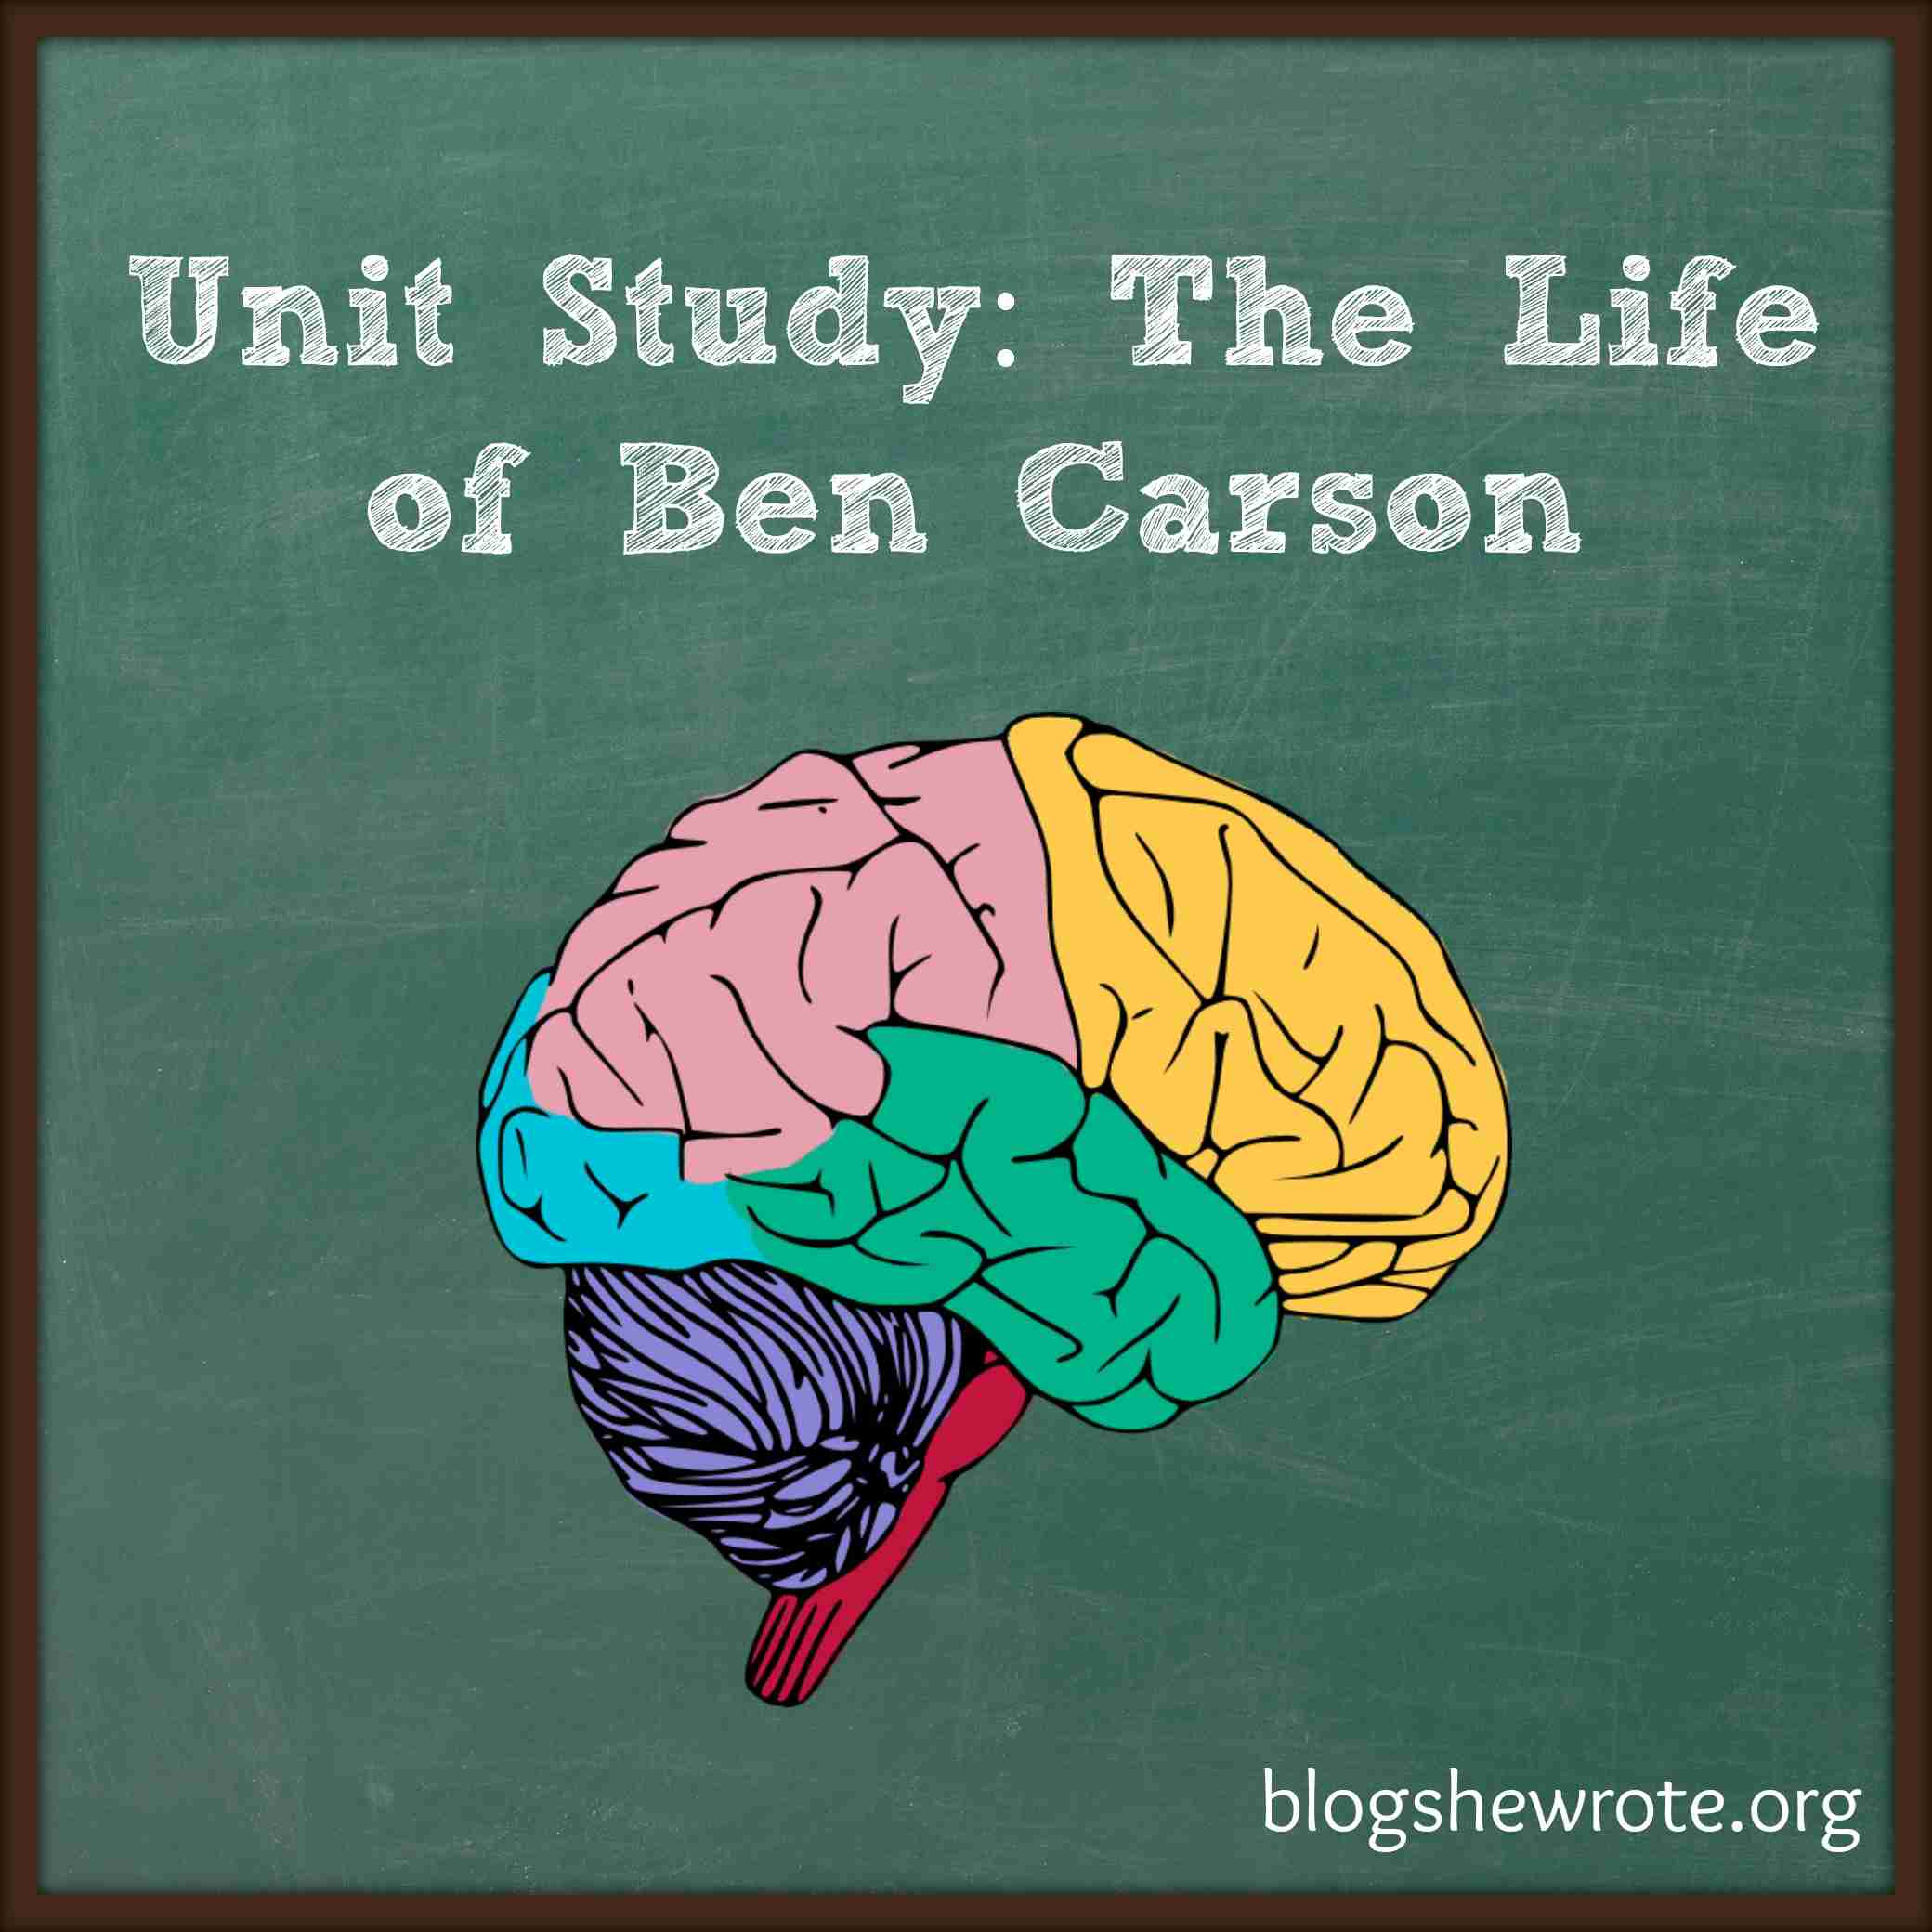 """an analysis of the character of ben carson Donald trump is accusing ben carson of lying in his story of attempting to stab a friend as a teenager """"how stupid do people have to be to believe that""""."""